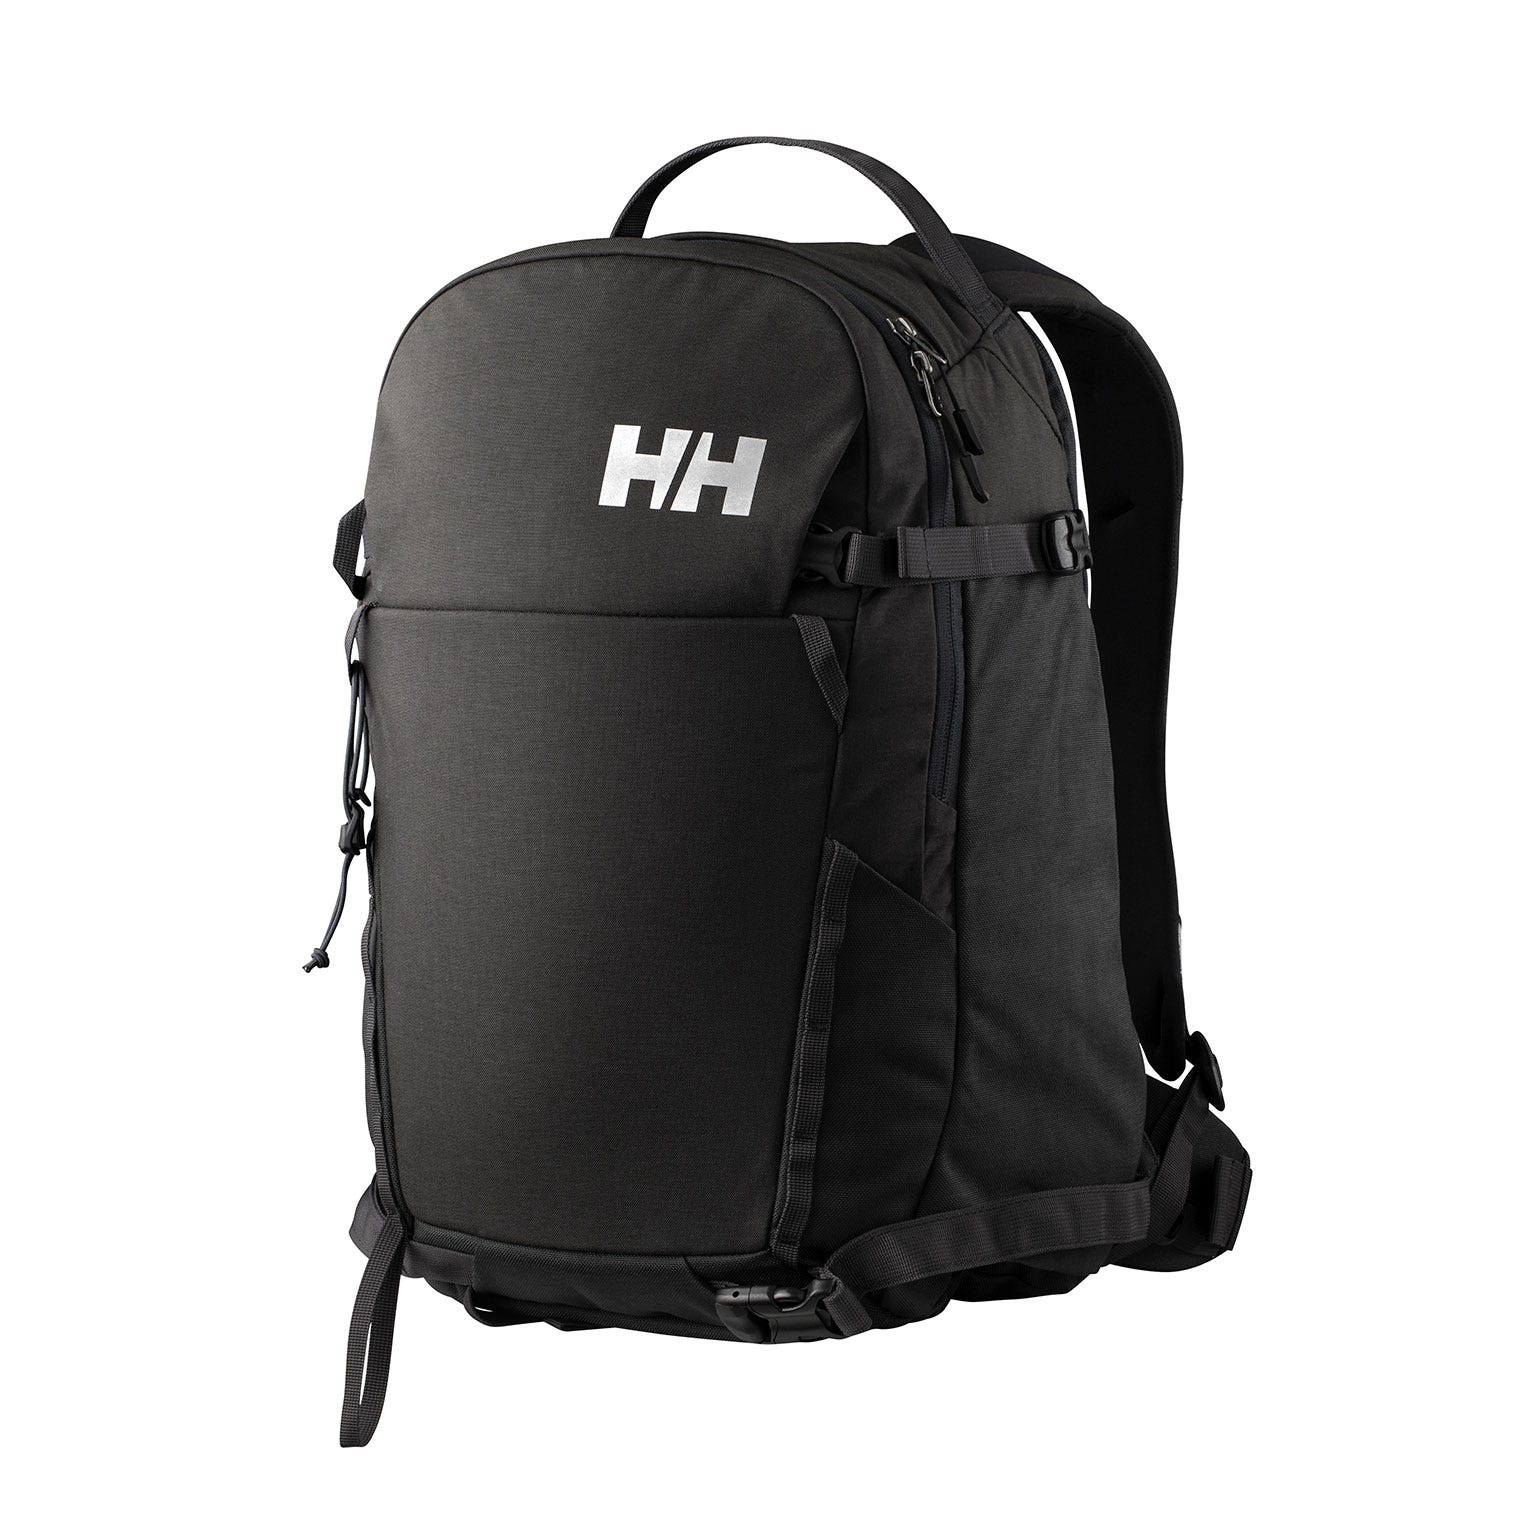 Övertalning Badkar Beskrivning  Helly Hansen Unisex Ullr 25L Backpack | Big Weather Gear | Helly Hansen  Newport